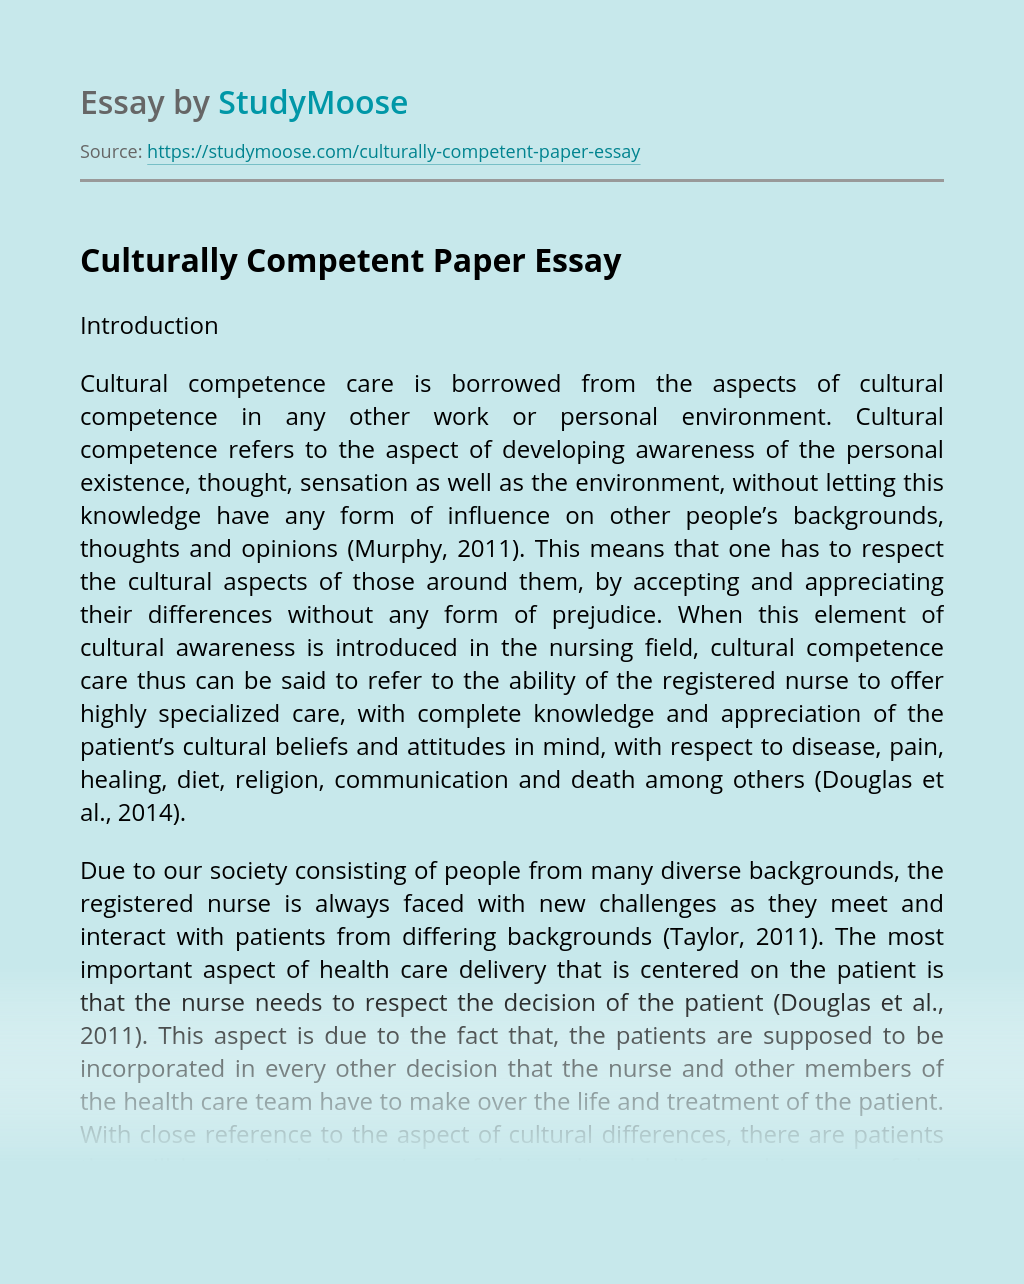 Culturally Competent Paper